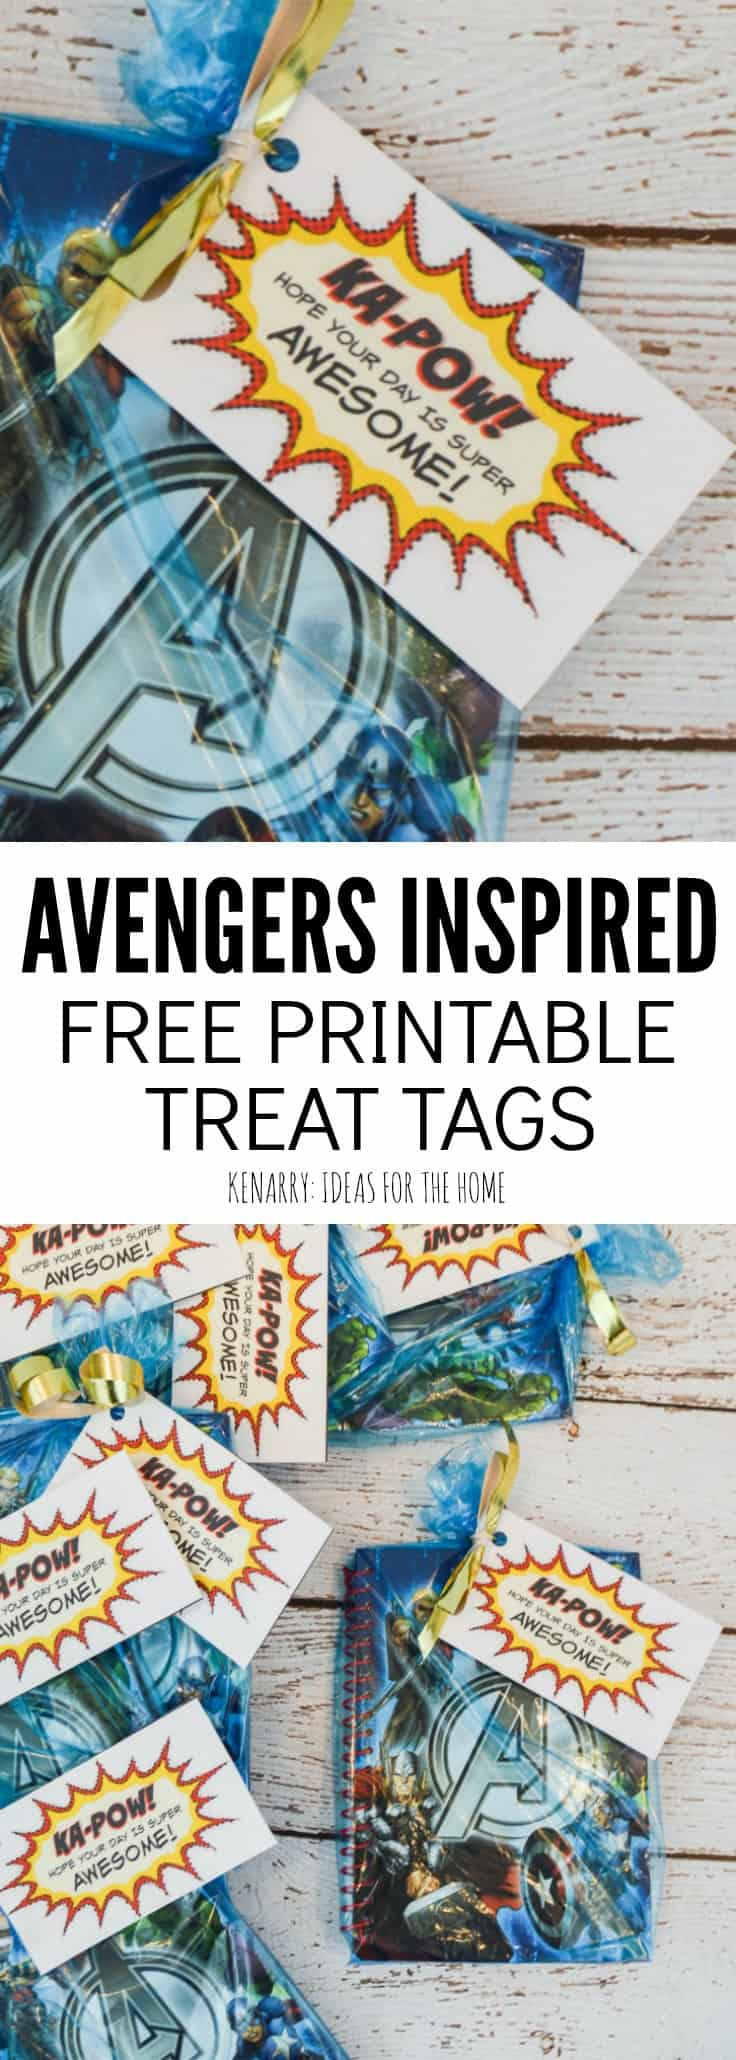 Need Avenger Party Favors for your child's birthday? These free printable party tags can be attached to any gift bag to celebrate a kid that loves Spiderman, Iron Man, Captain America, The Hulk and other Marvel Super Heroes!